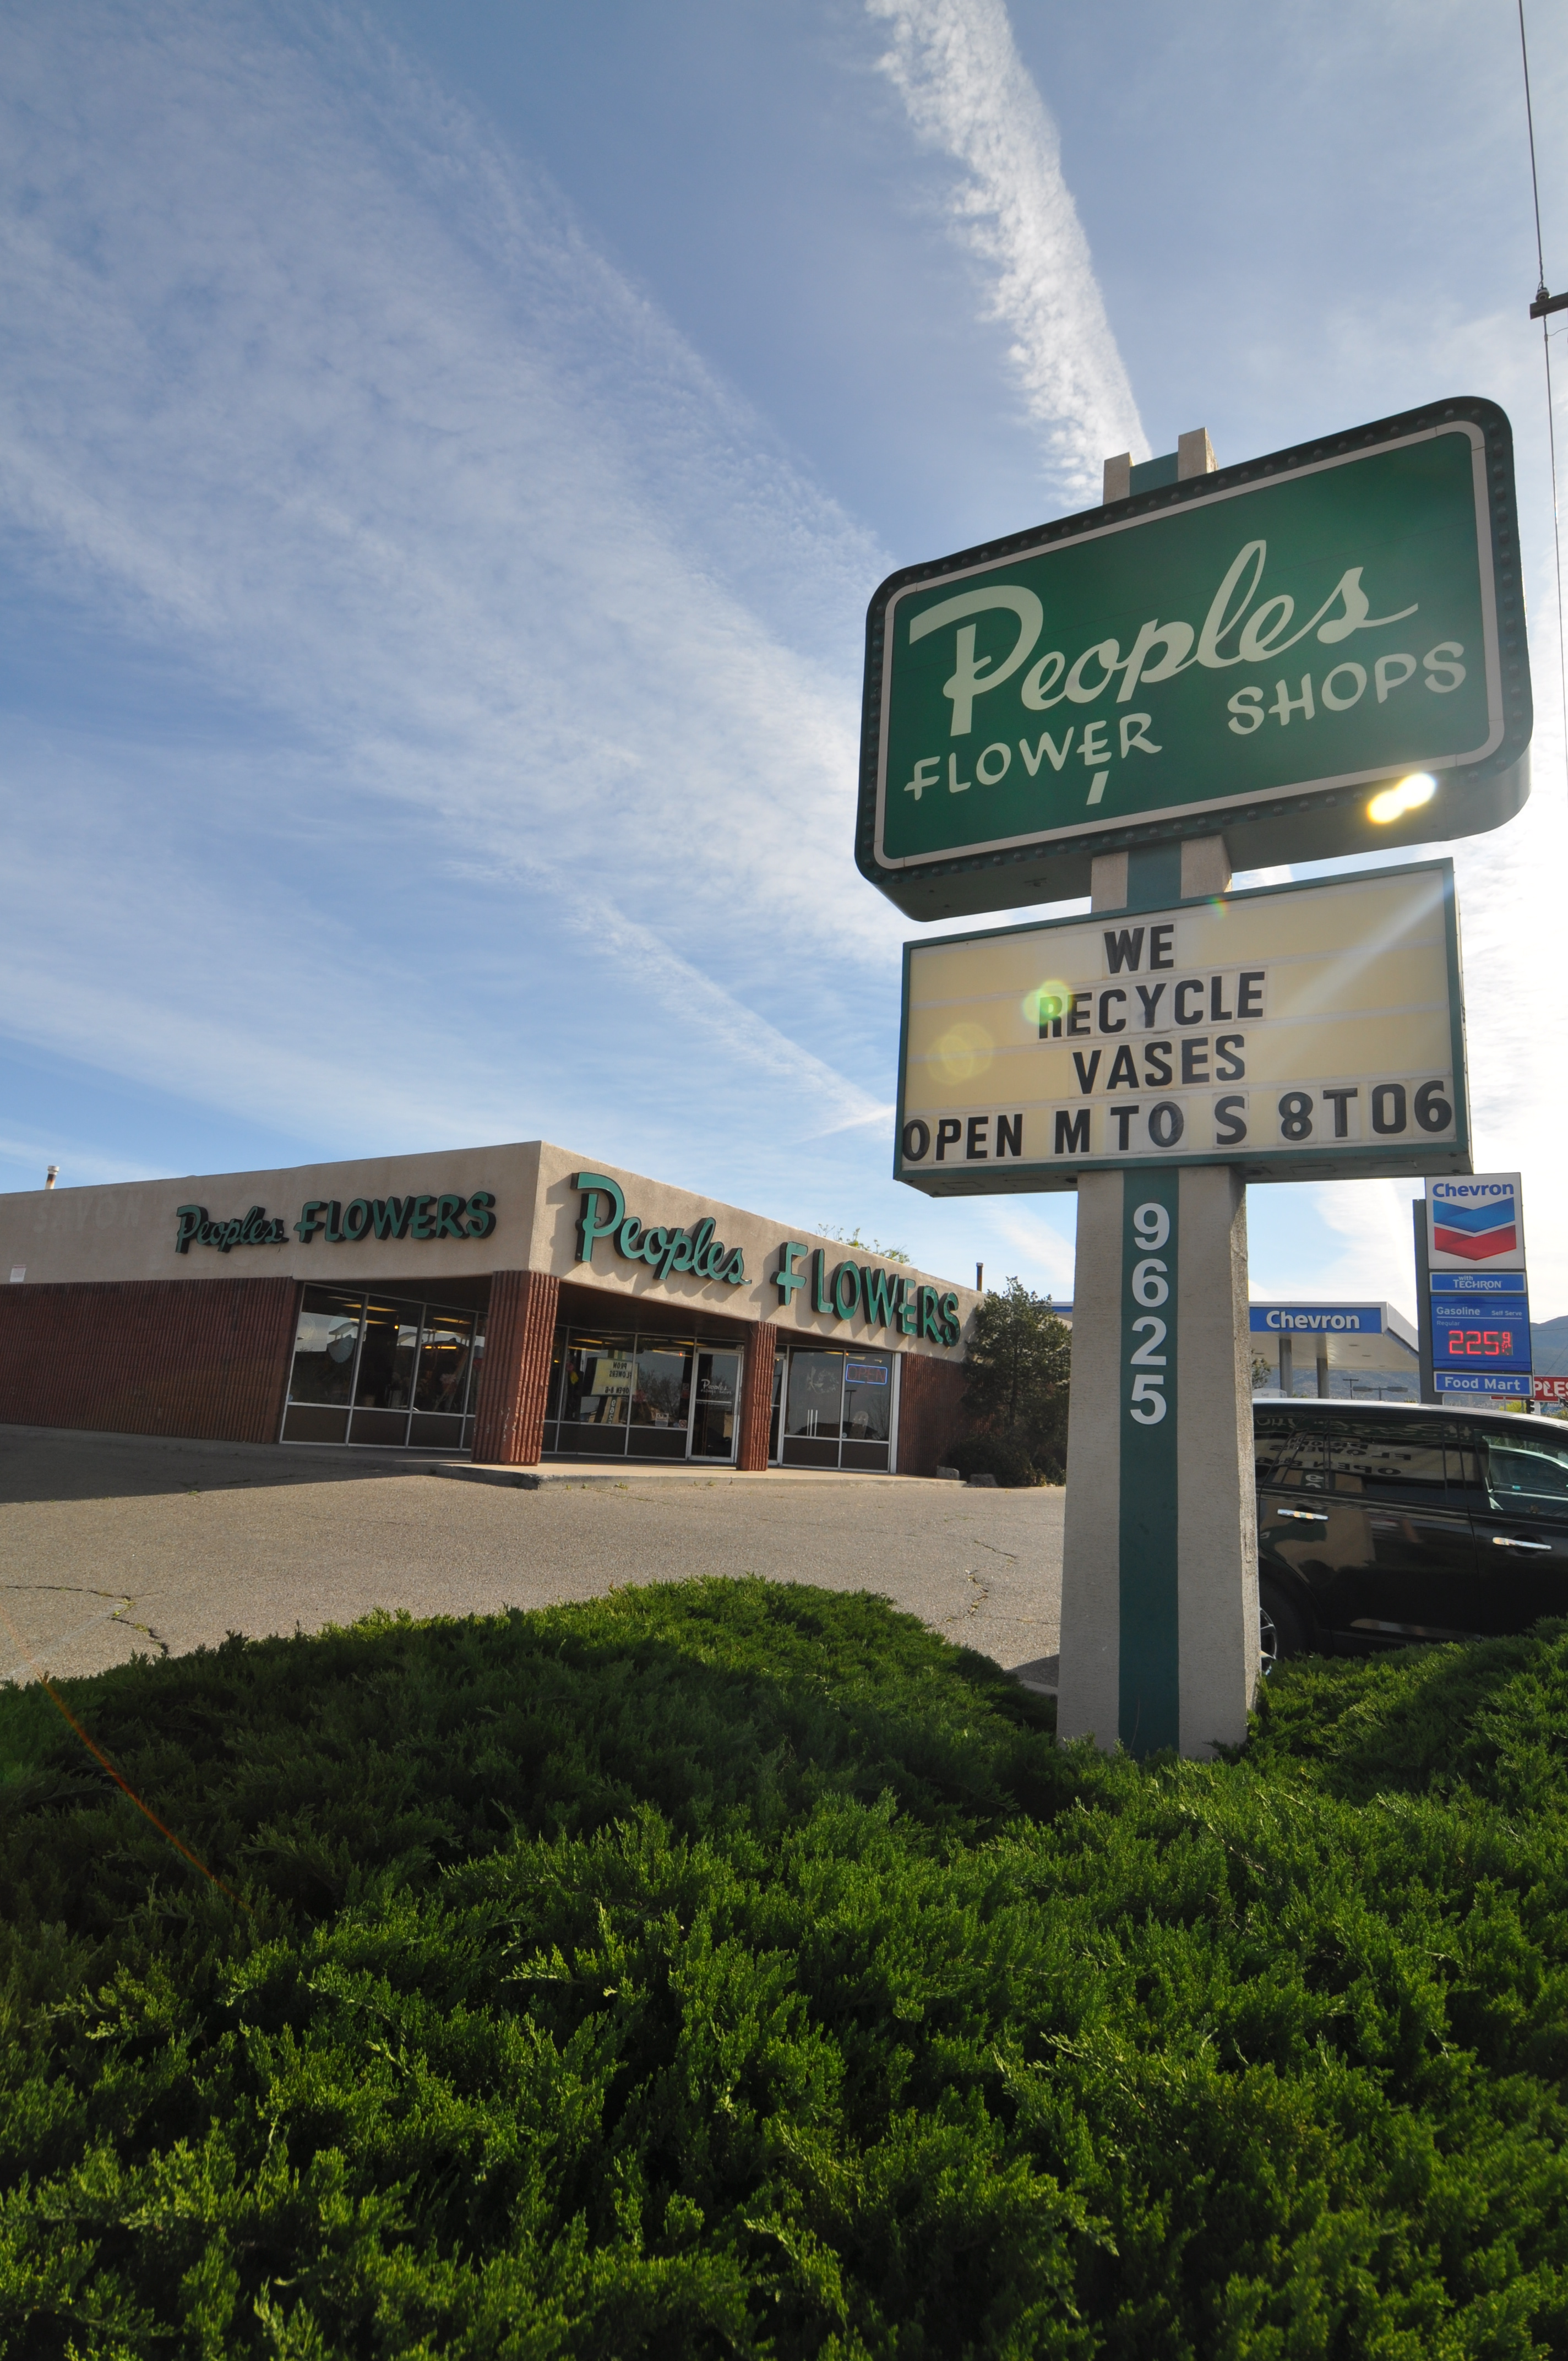 Peoples Flower Shops Far North Location image 25